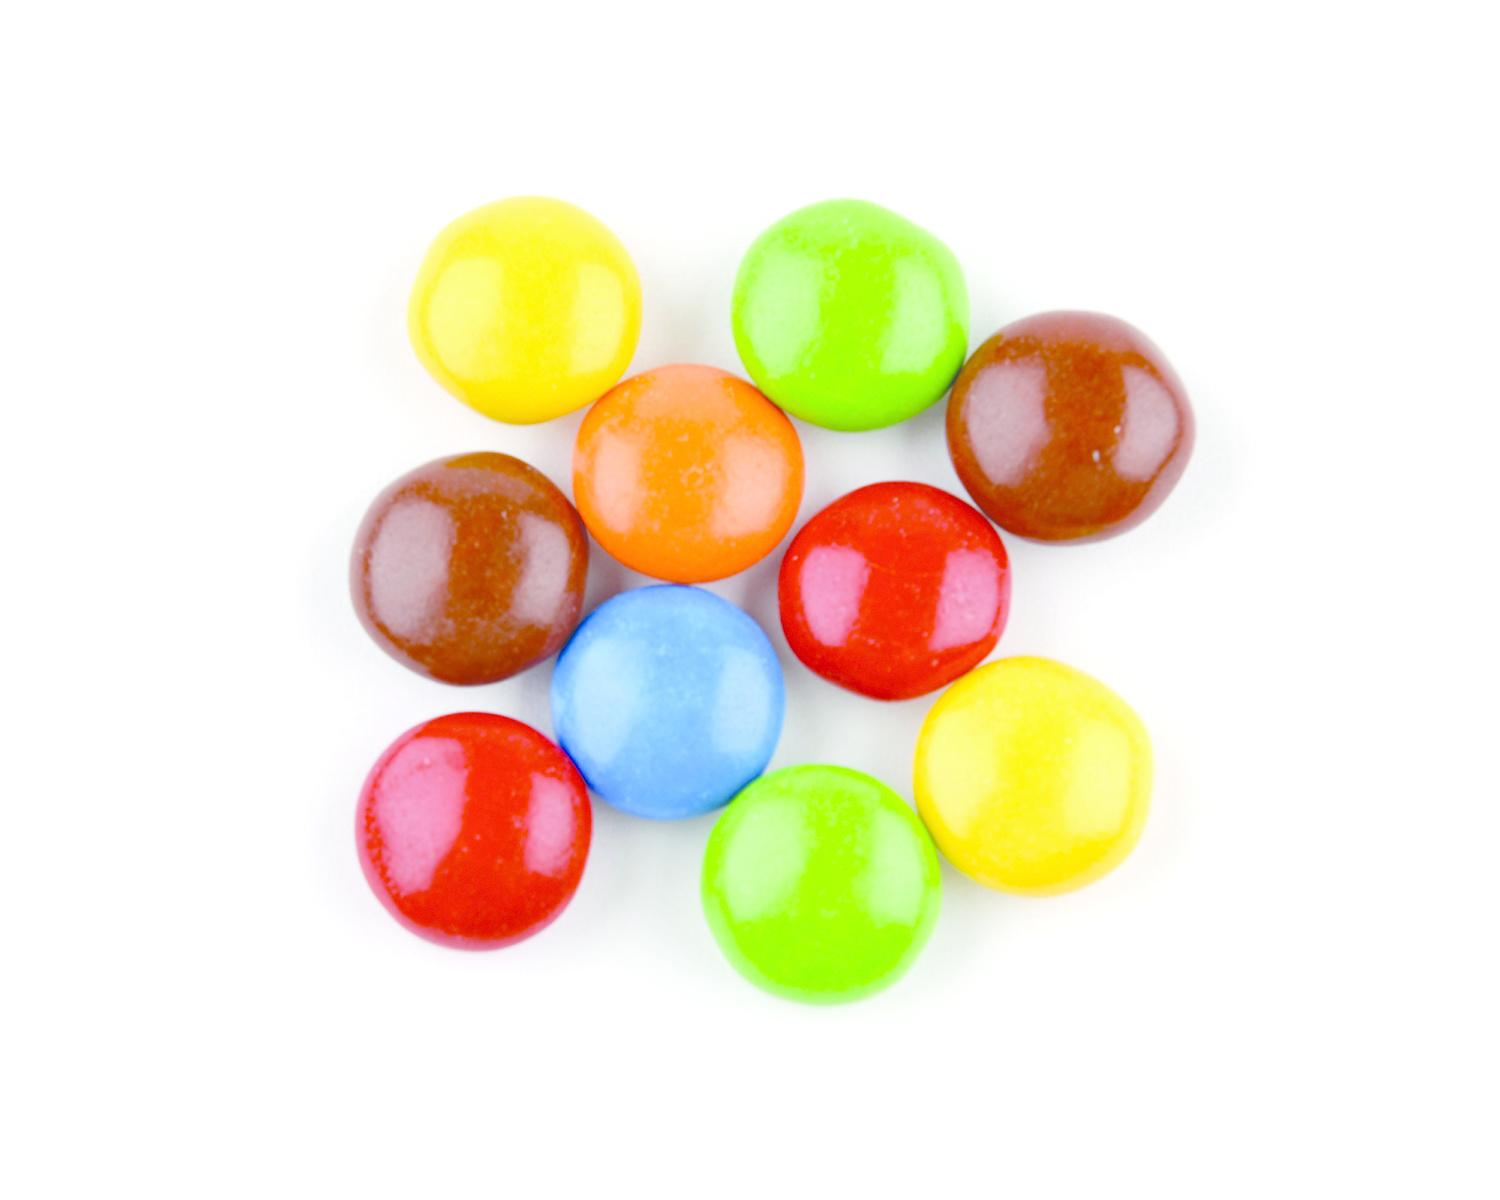 image of Candy Coated Chocolate Pieces